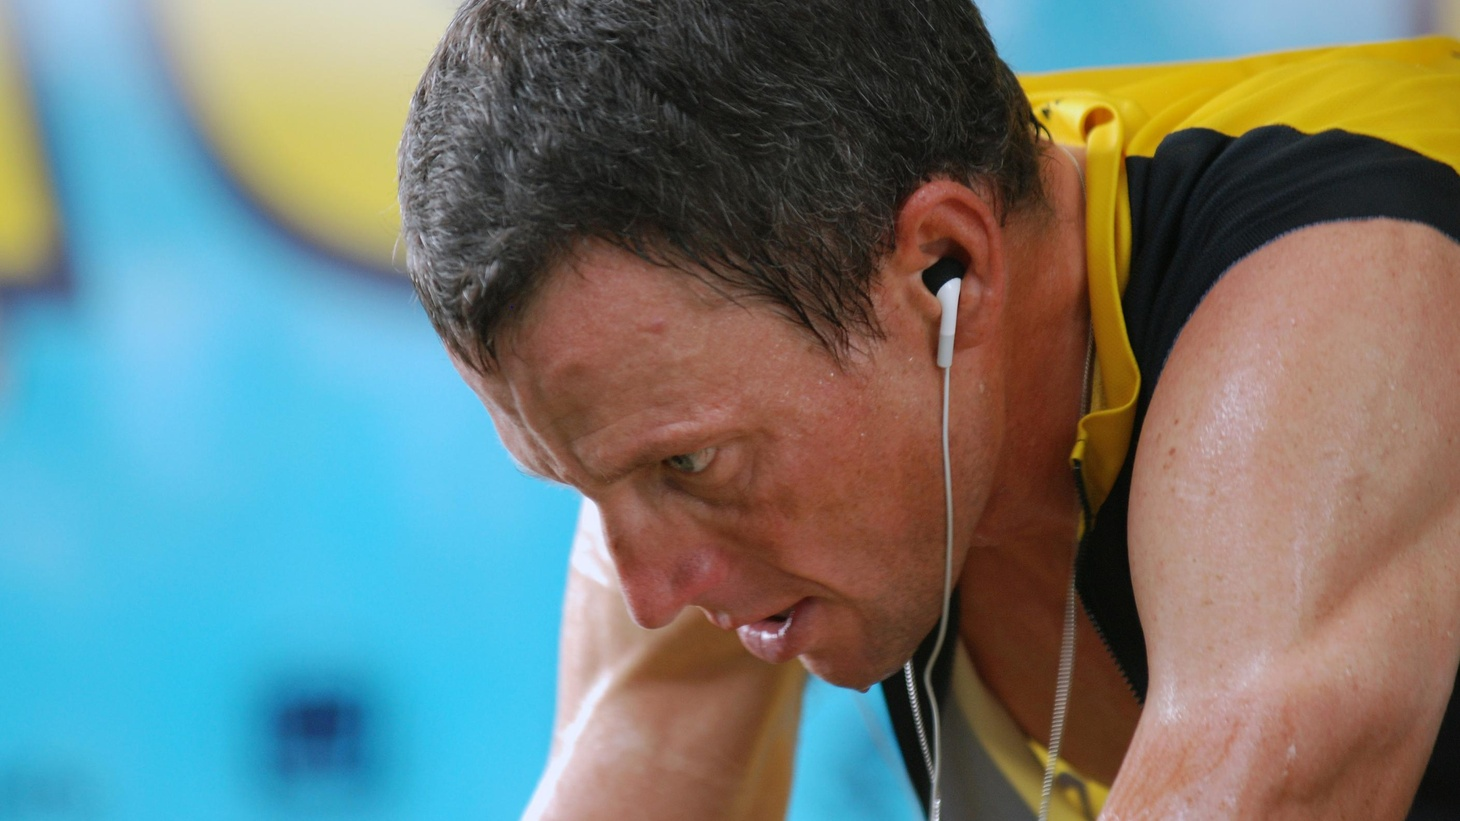 Was iconic cyclist Lance Armstrong nothing more than a compulsive liar?